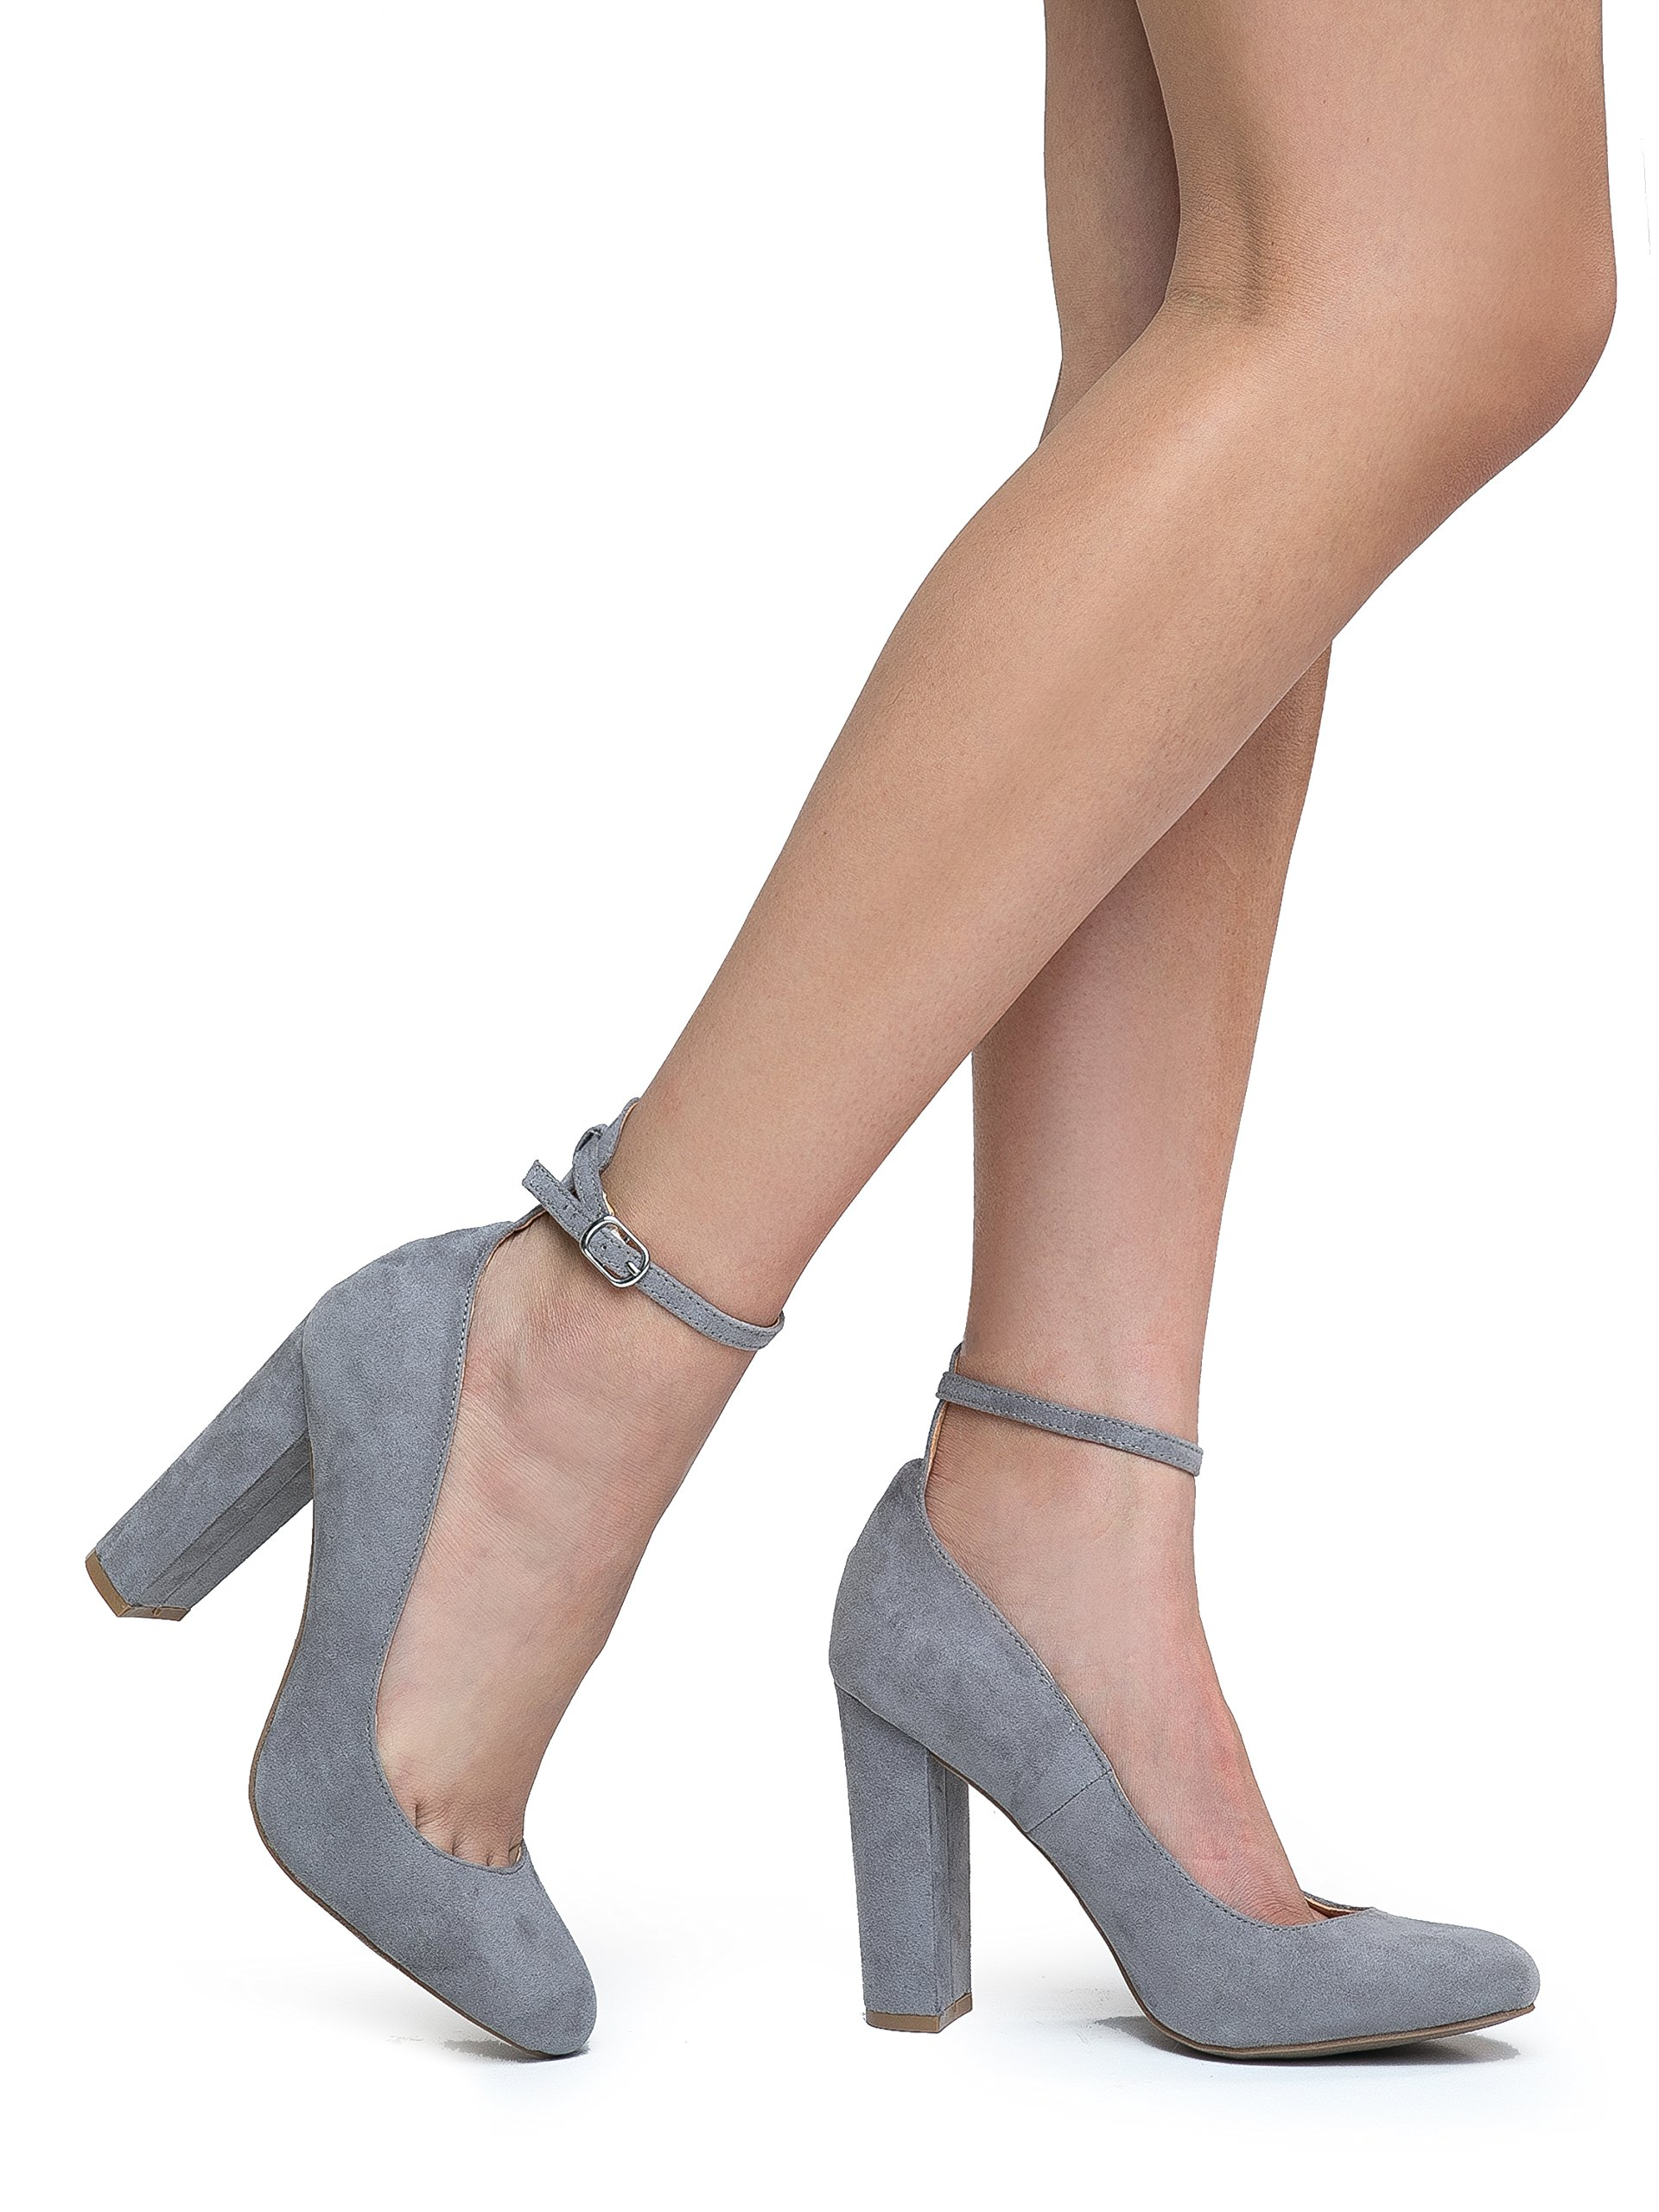 Emery Ankle Strap Block High Heel, Grey Suede, 7.5 B(M) US